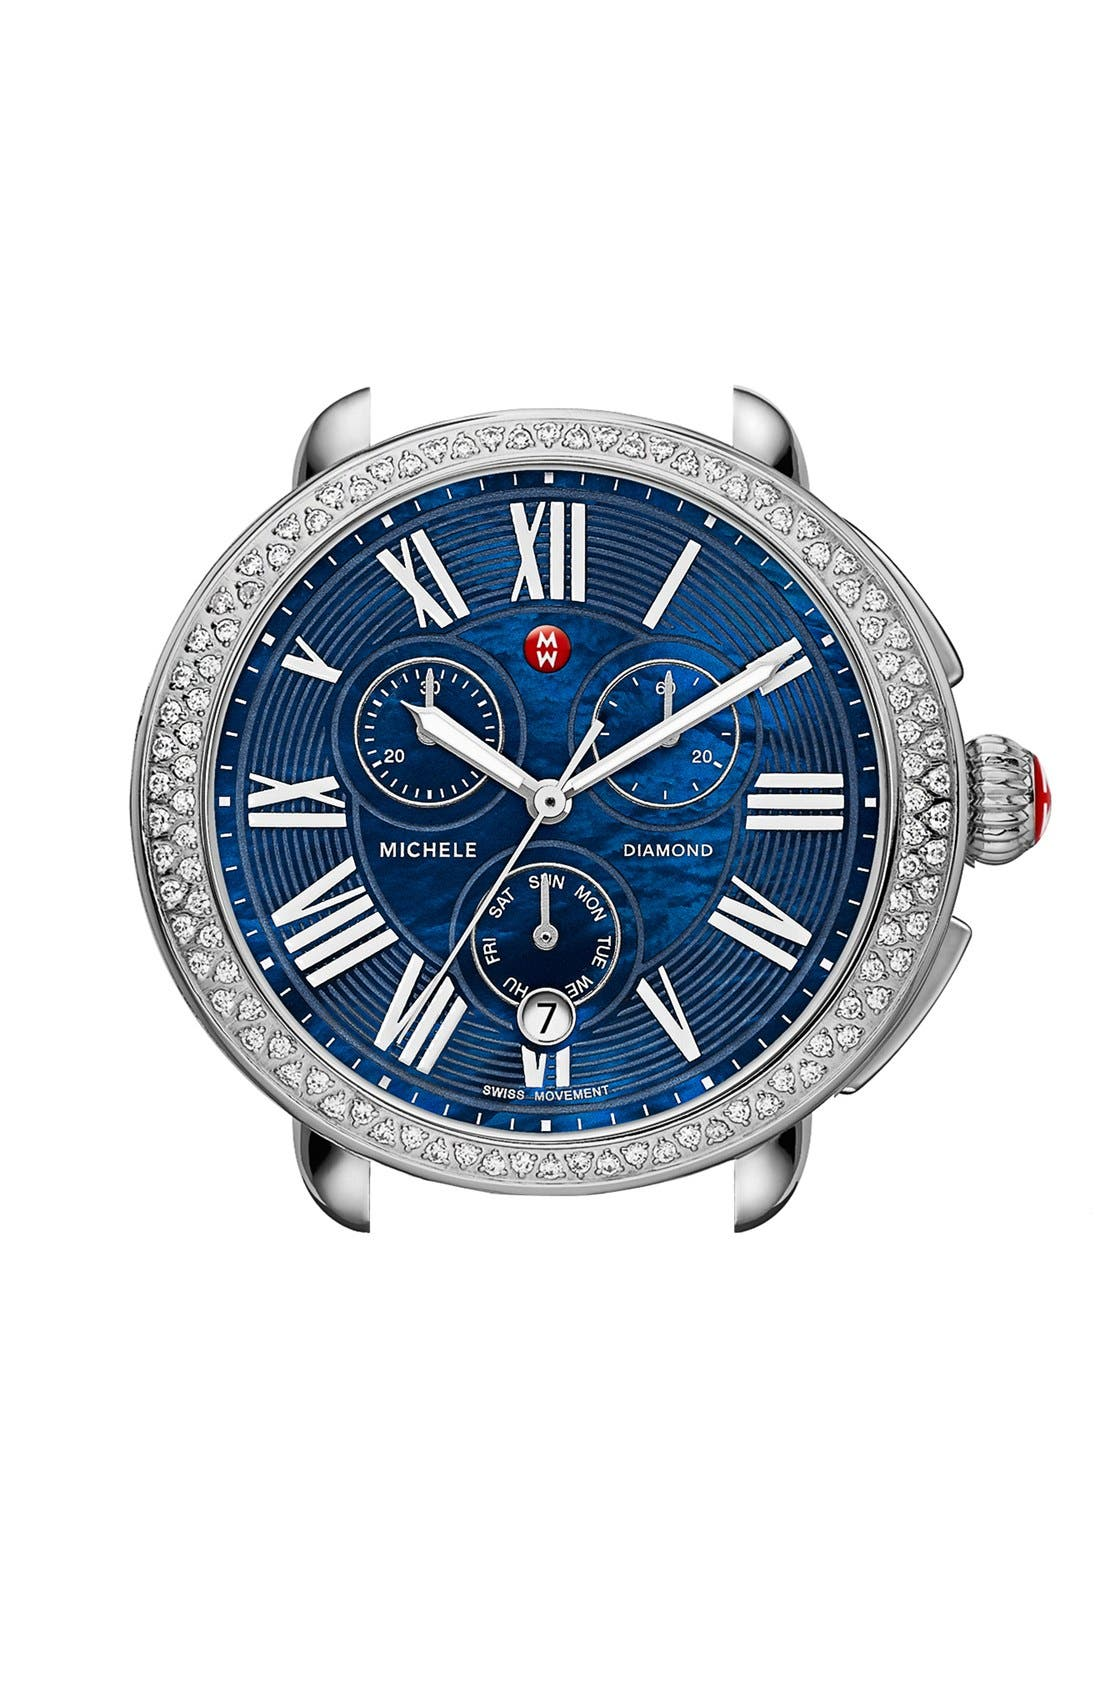 Main Image - MICHELE Serein Diamond Blue Dial Watch Case, 40mm x 38mm